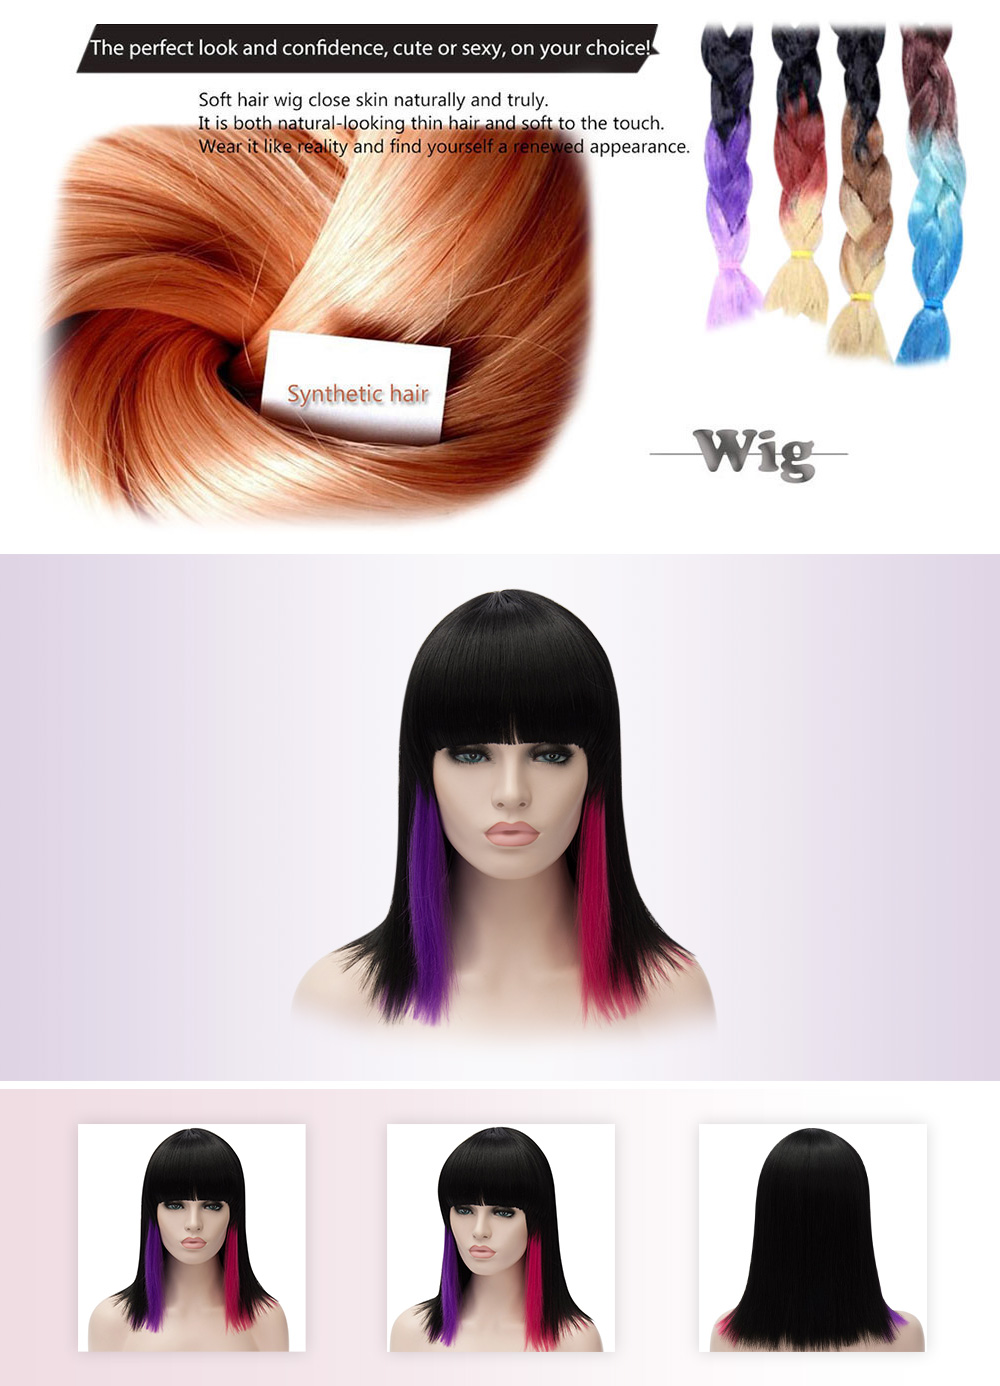 European Ombre Highlight Mixed Colors Medium Straight Full Bangs Wigs for Cosplay Party